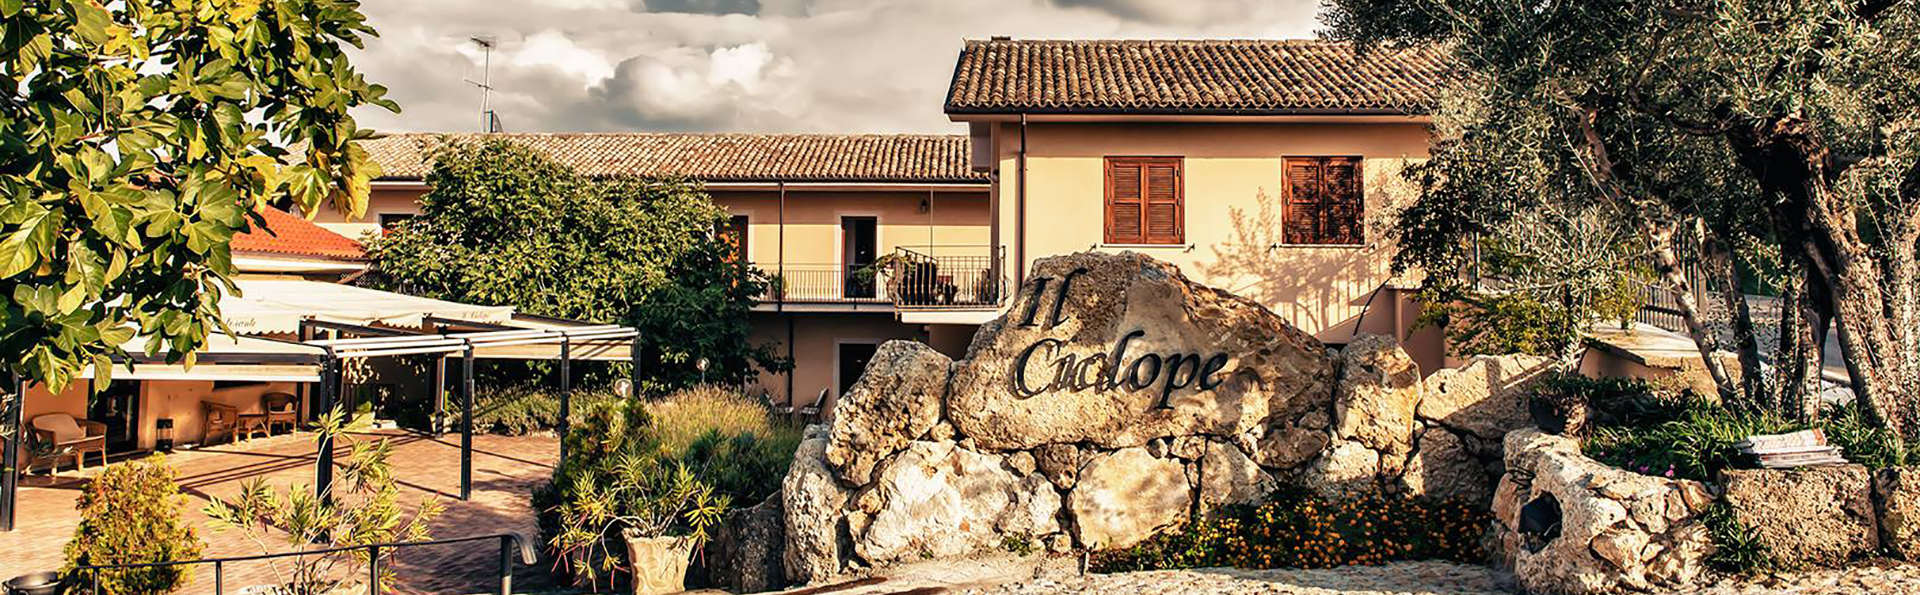 Il Ciclope CountryHotel & Restaurant - Edit_Front4.jpg